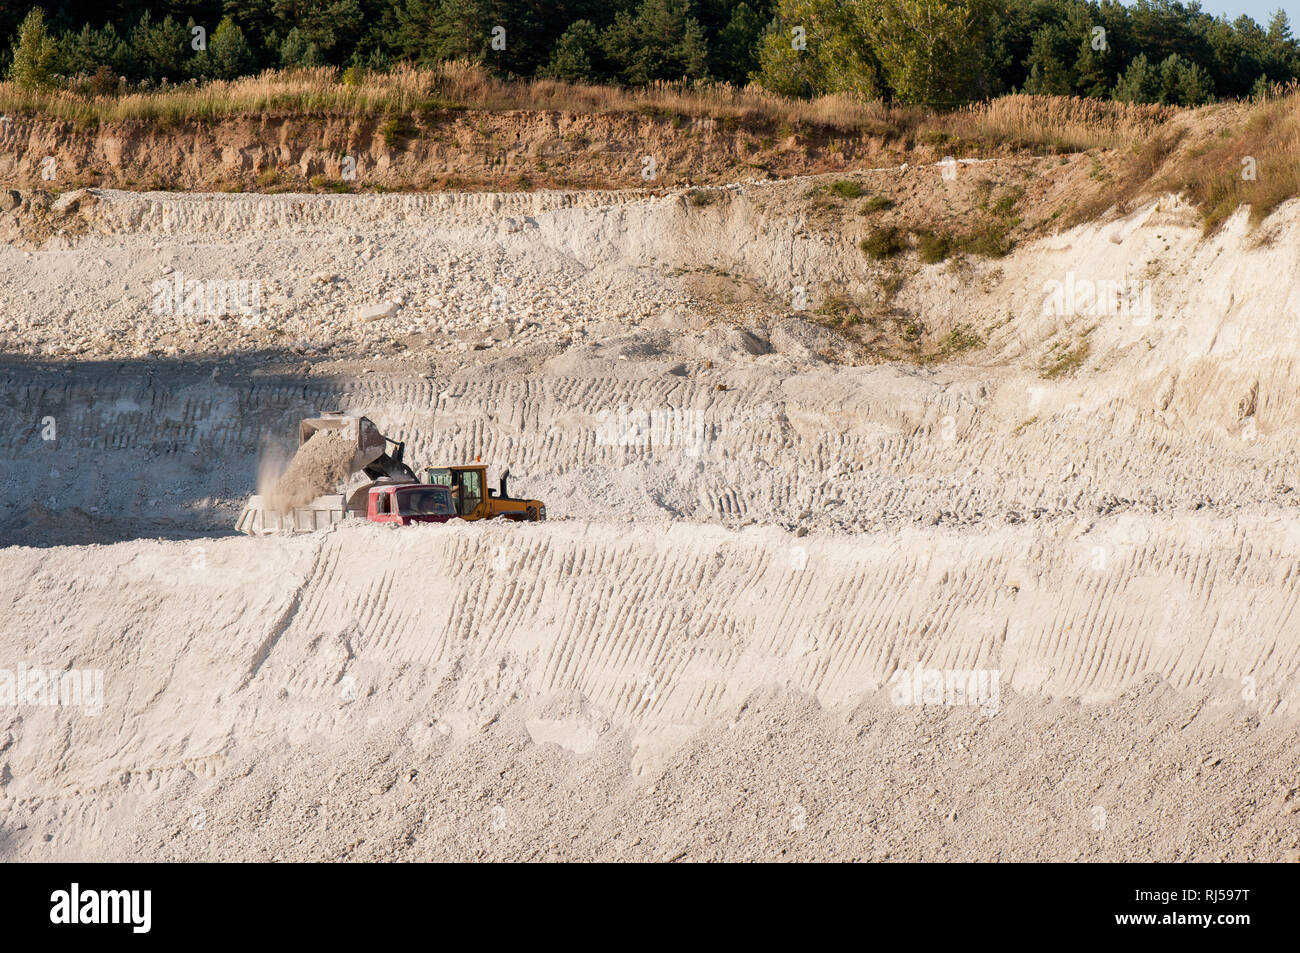 Chalk mine pit landscape in Mielnik, Poland, podlaskie, Digger heaping chalk on heavy goods vehicle, White chalk pit in open air and woods afar, nobod - Stock Image